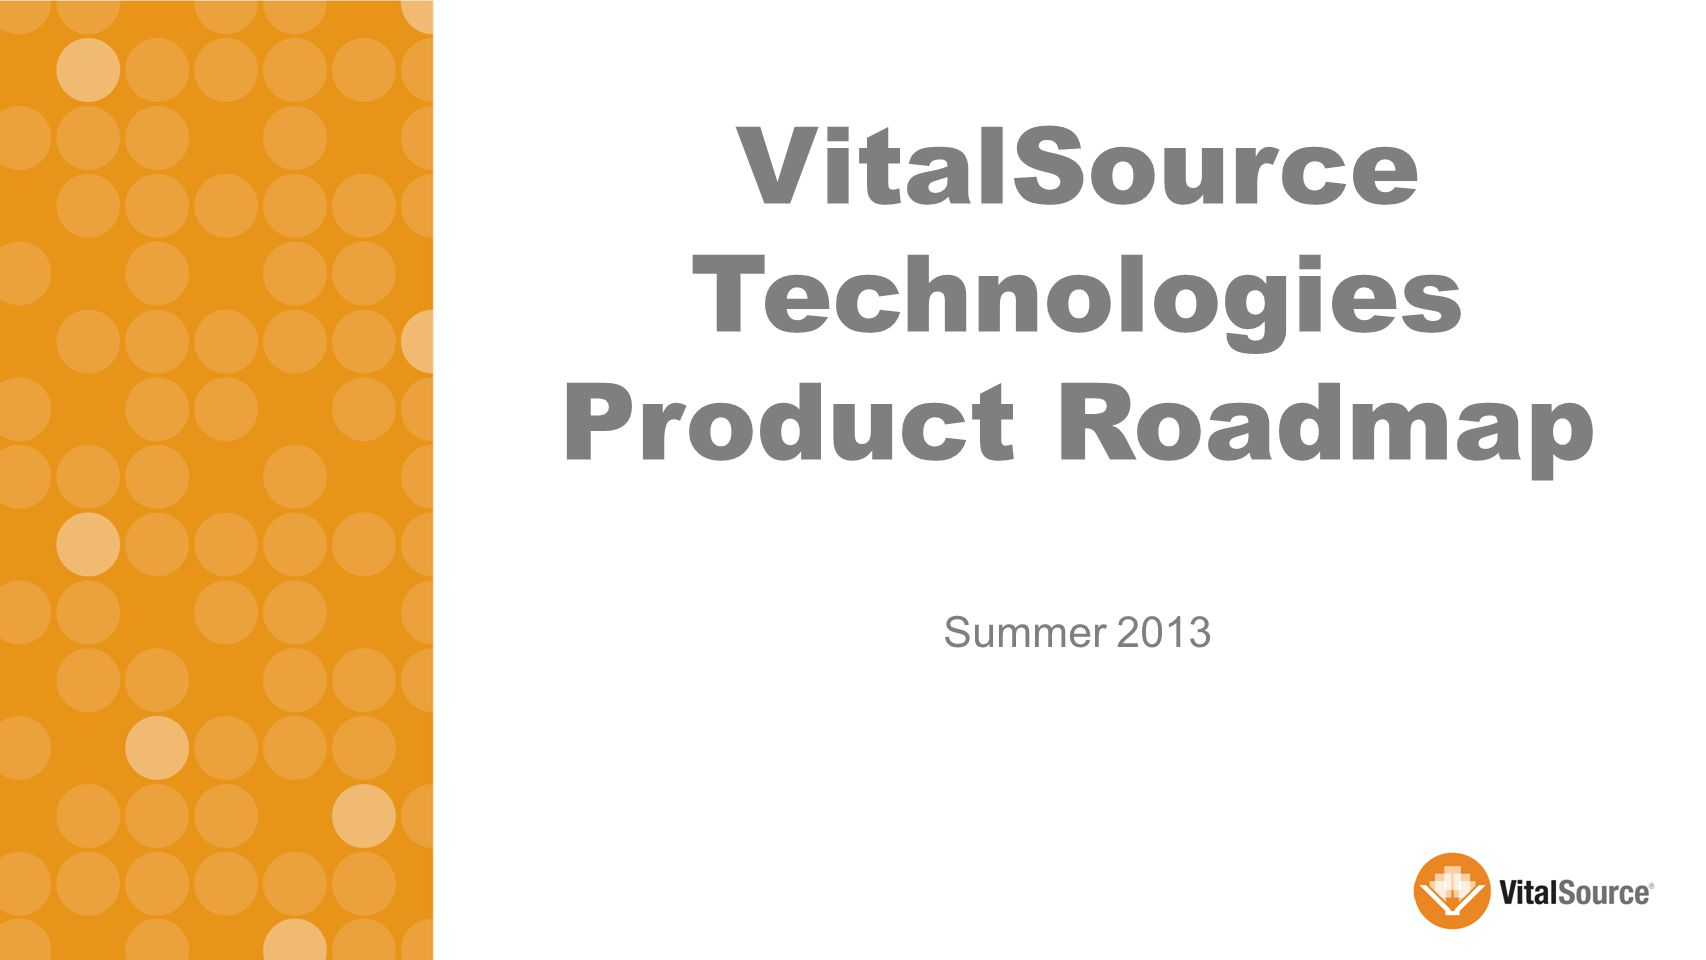 Summer 2013 VitalSource Technologies Product Roadmap